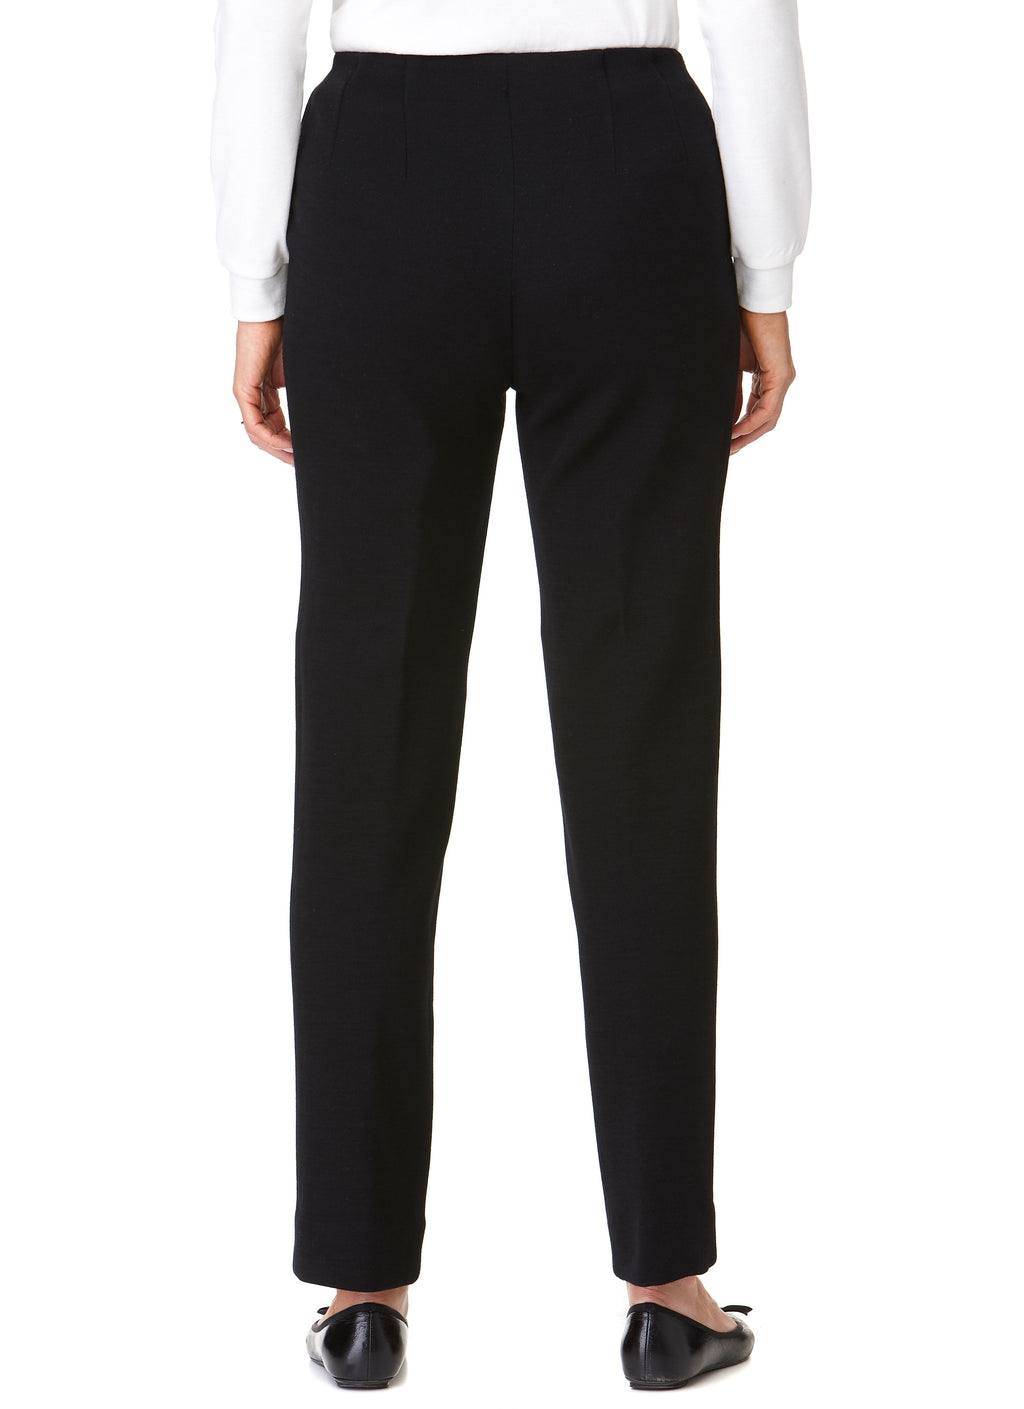 HARRIETVILLE PULL ON PONTI PANT